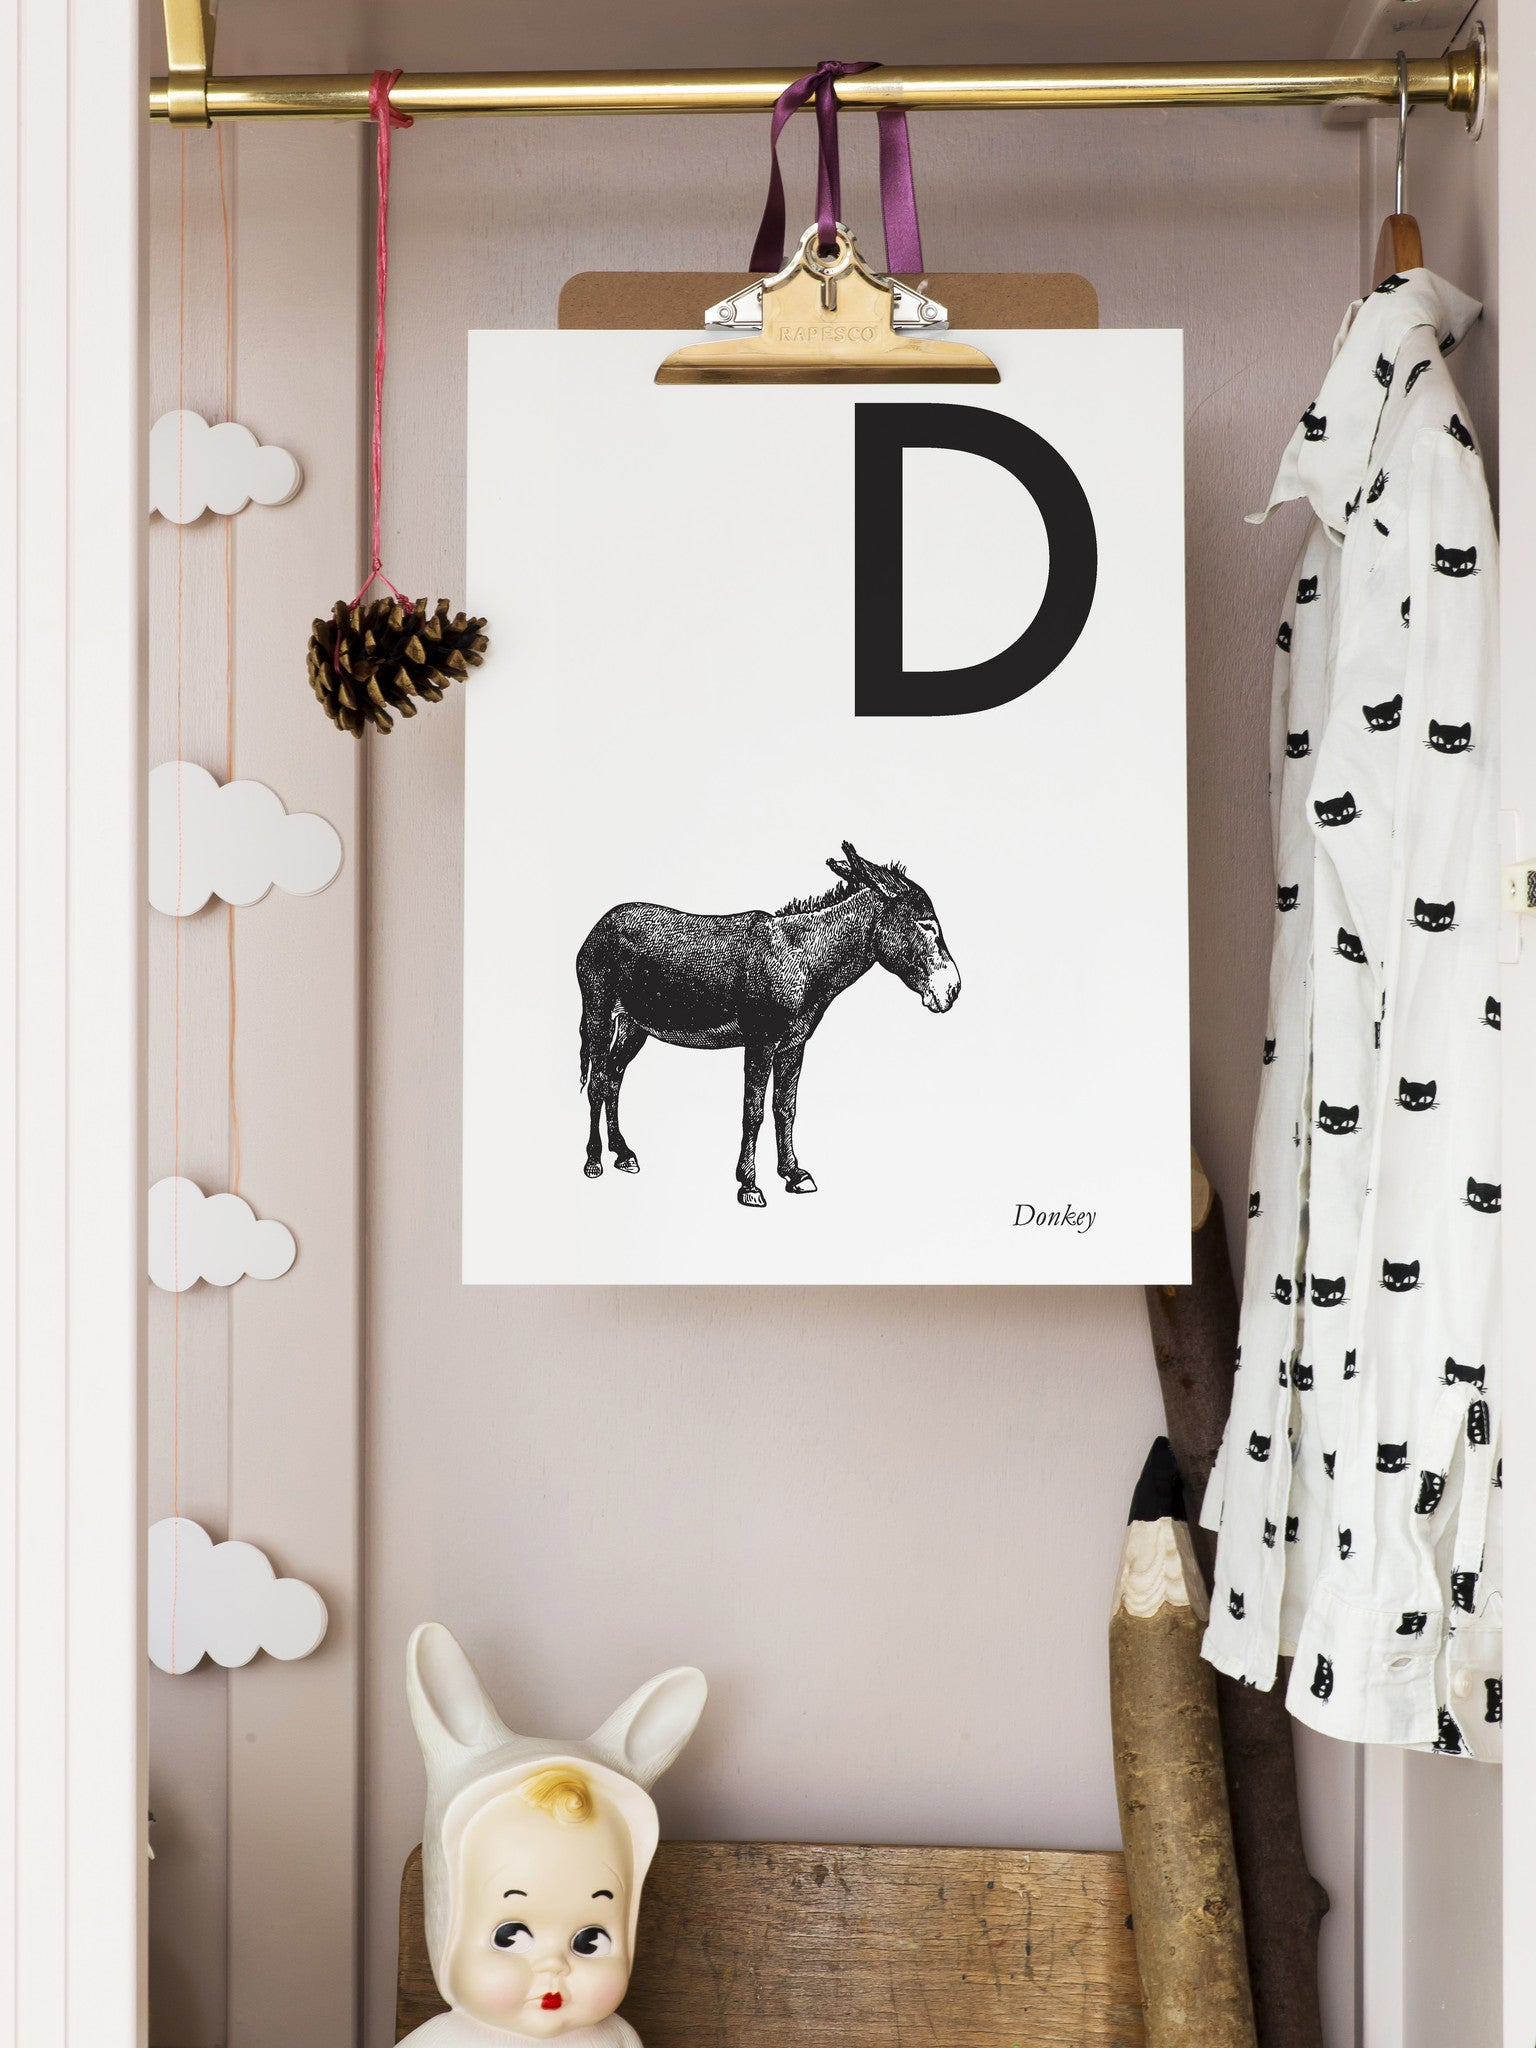 ANIMAL LETTER D DOWNLOADABLE PRINT